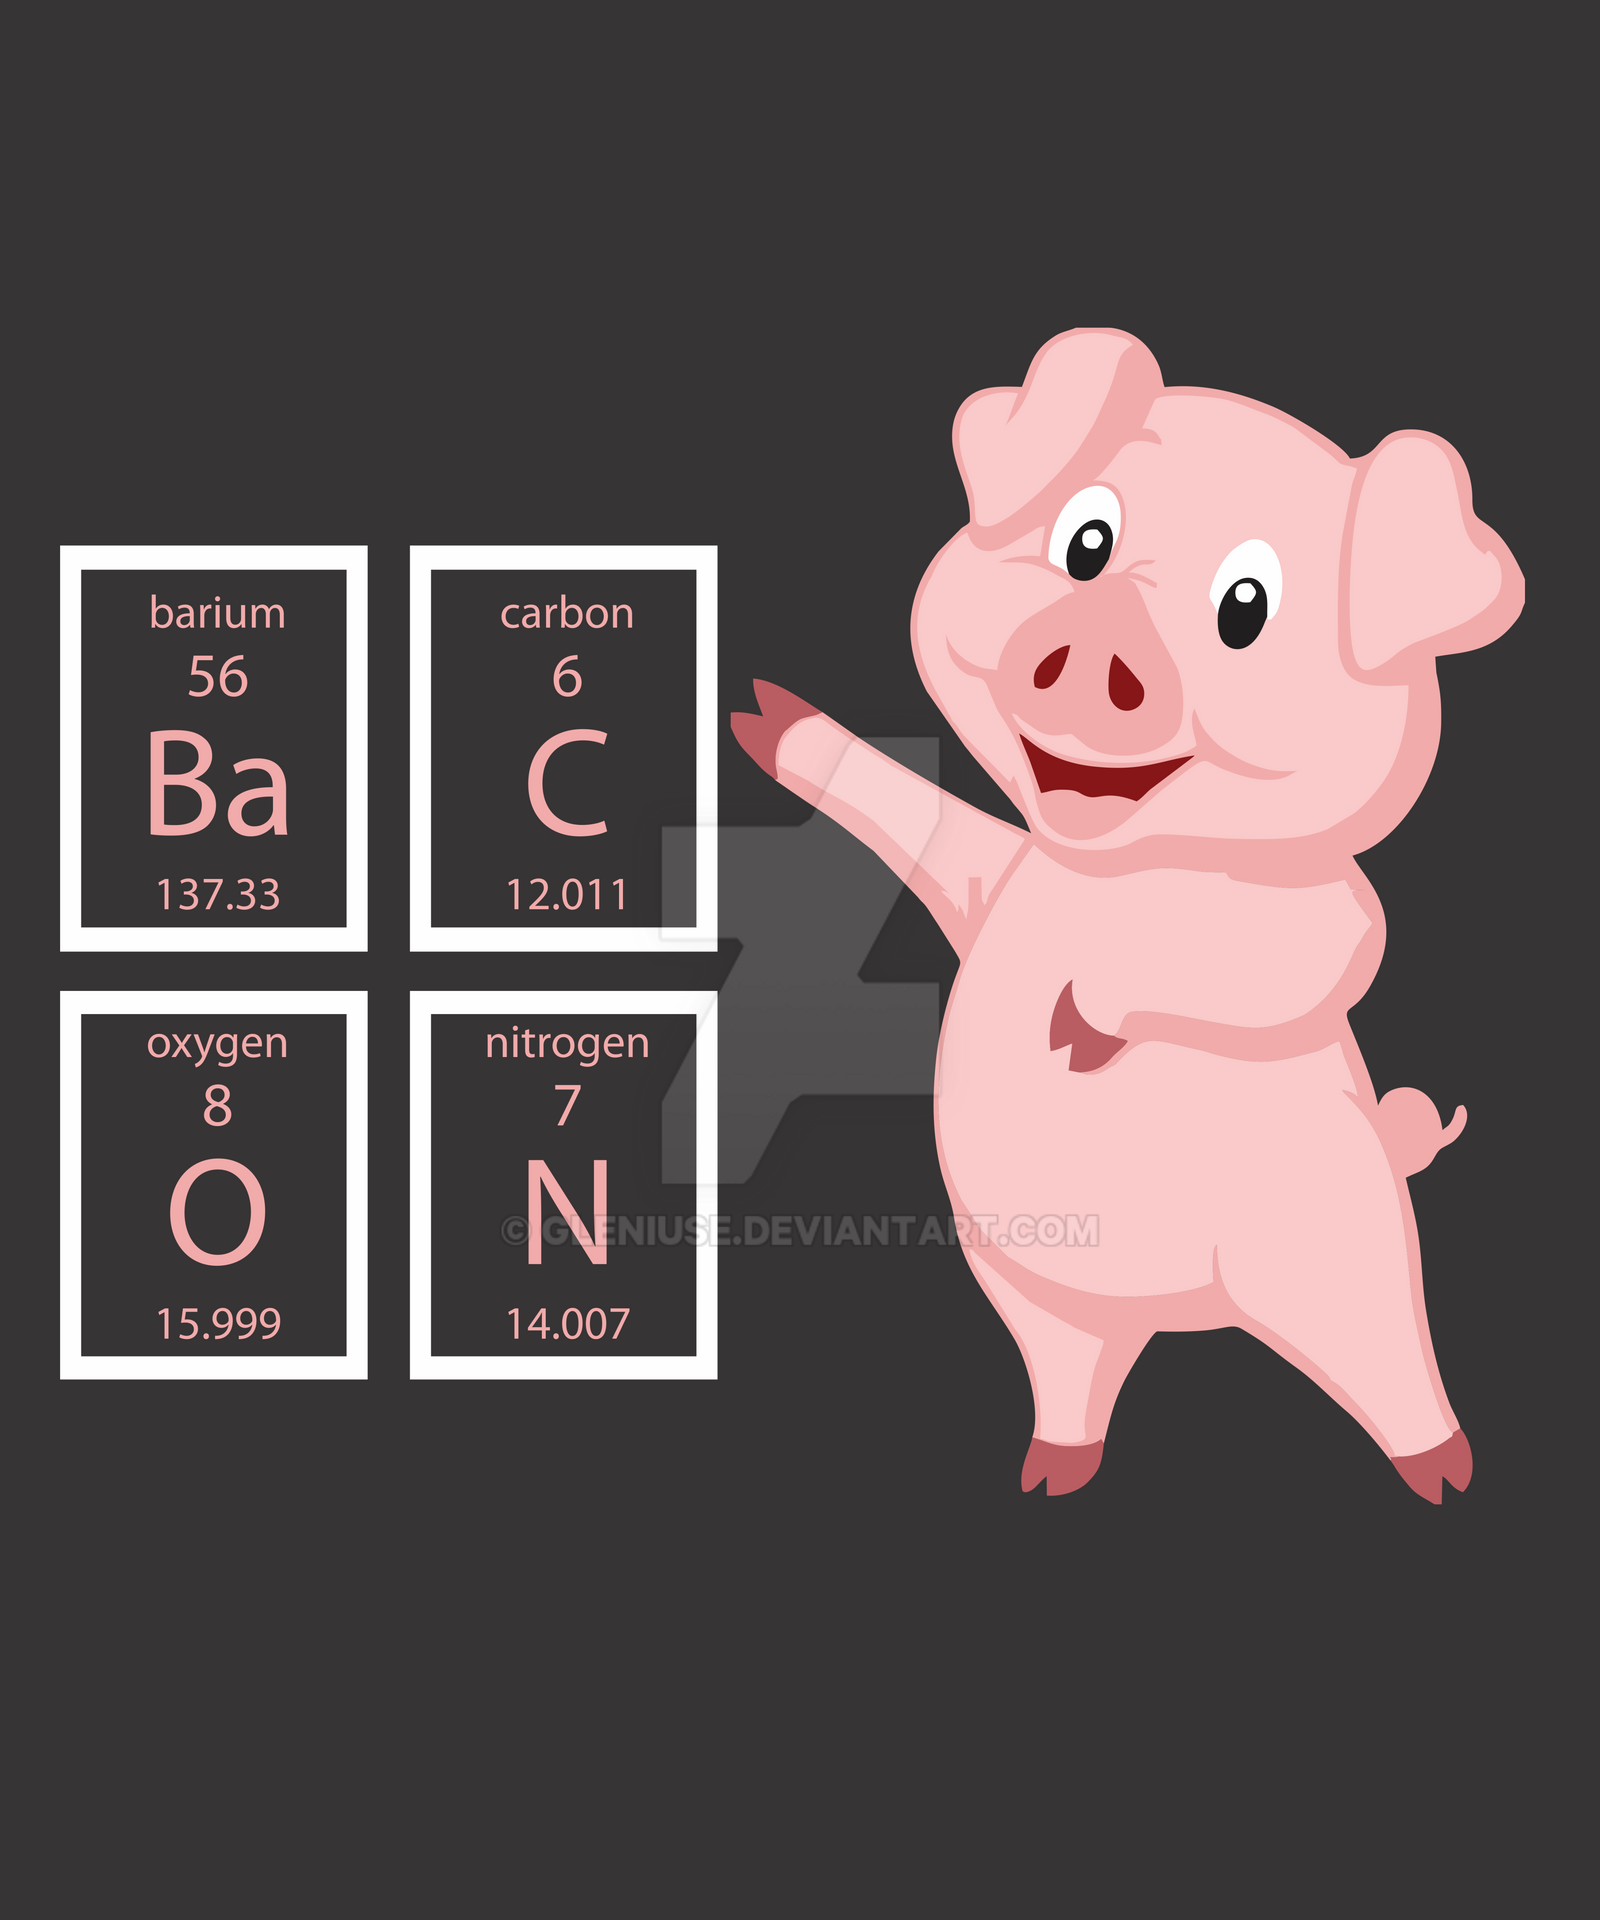 005periodic table bacon funnydisplay by gleniuse on deviantart 005periodic table bacon funnydisplay by gleniuse gamestrikefo Gallery